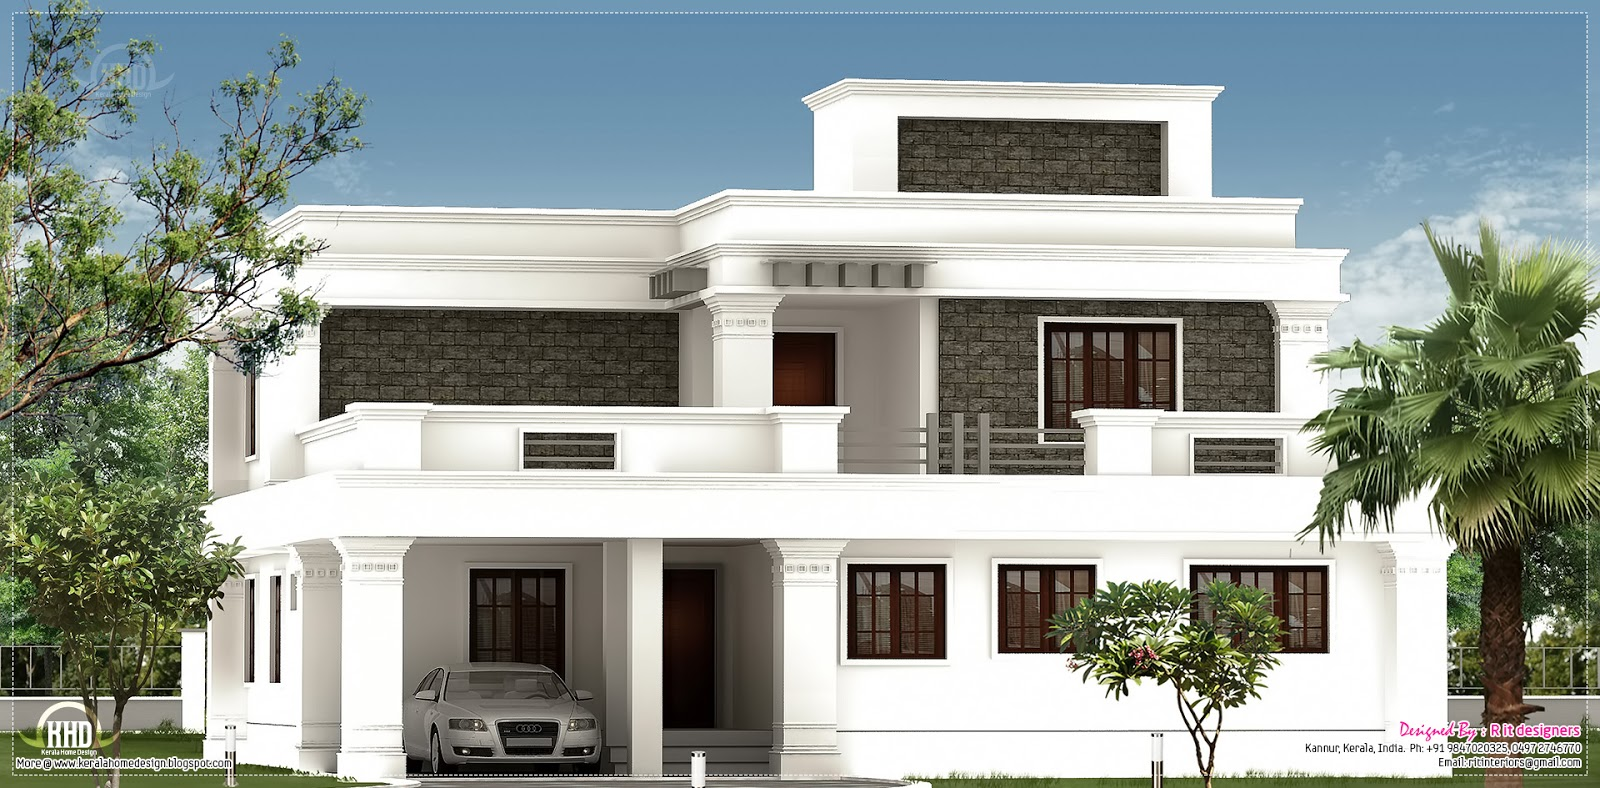 Flat Roof Villa Exterior In 2400 Home Kerala Plans: home design